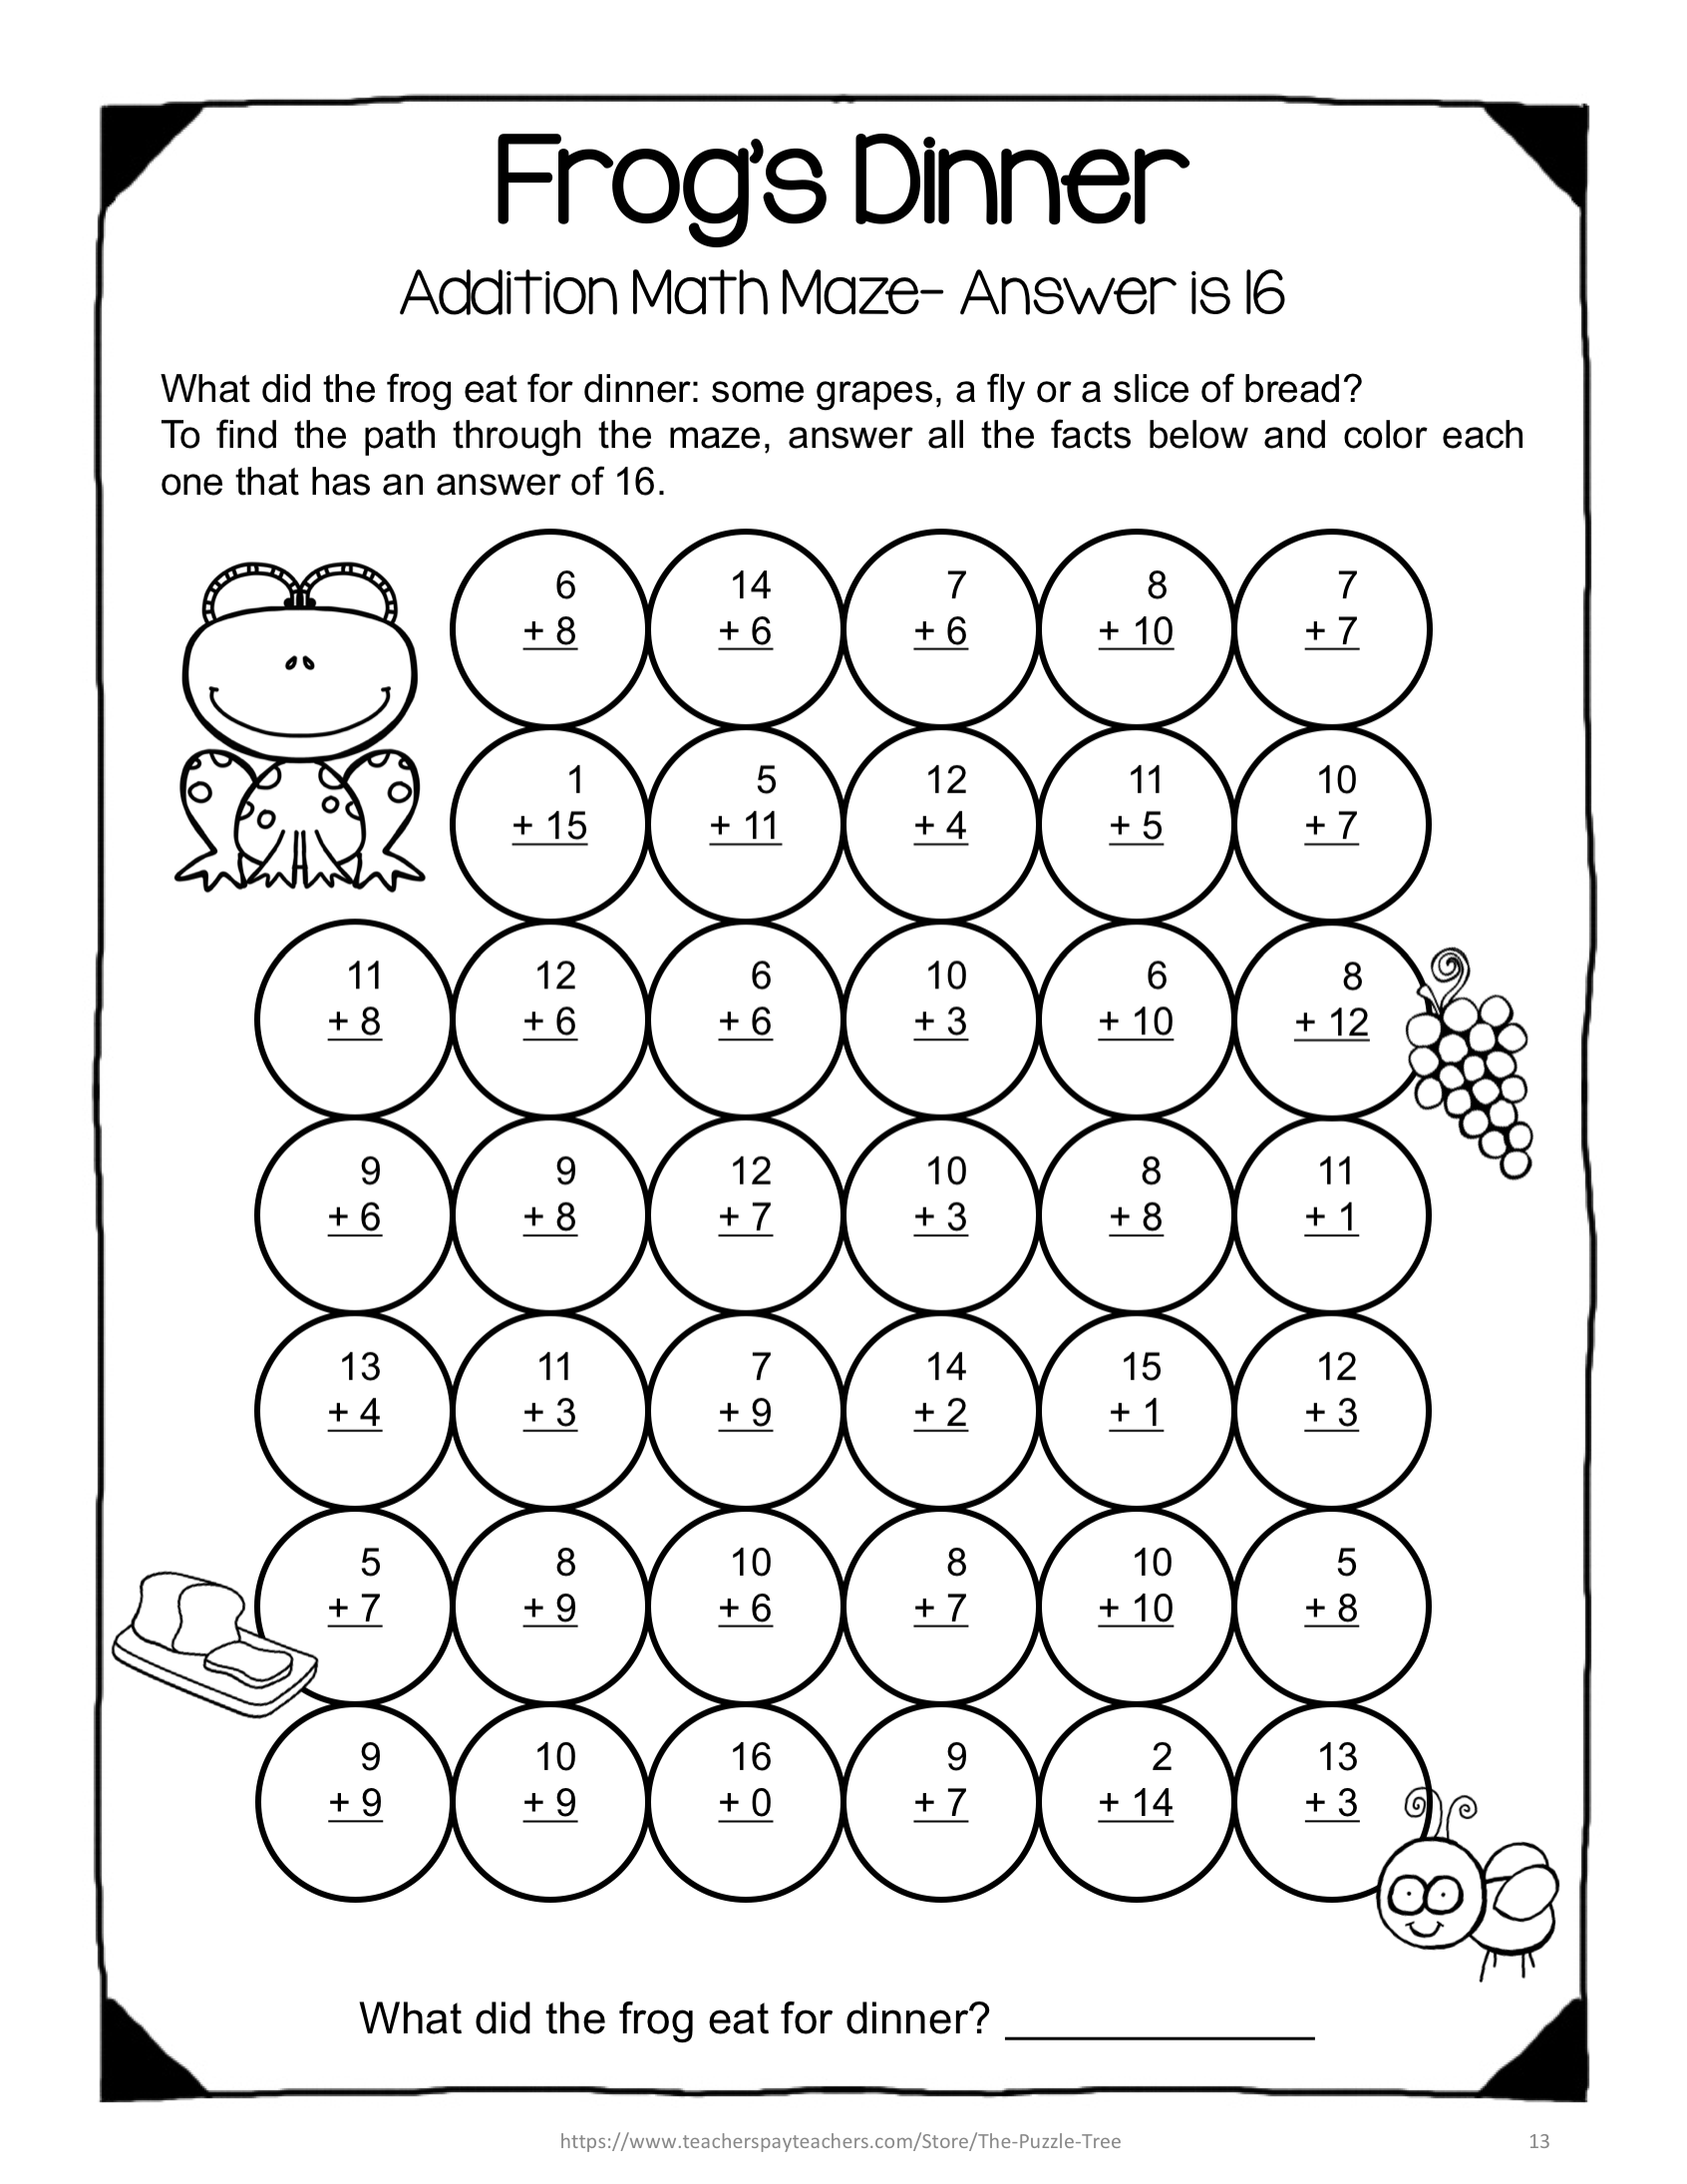 Have Fun With Addition In The Classroom With These Addition